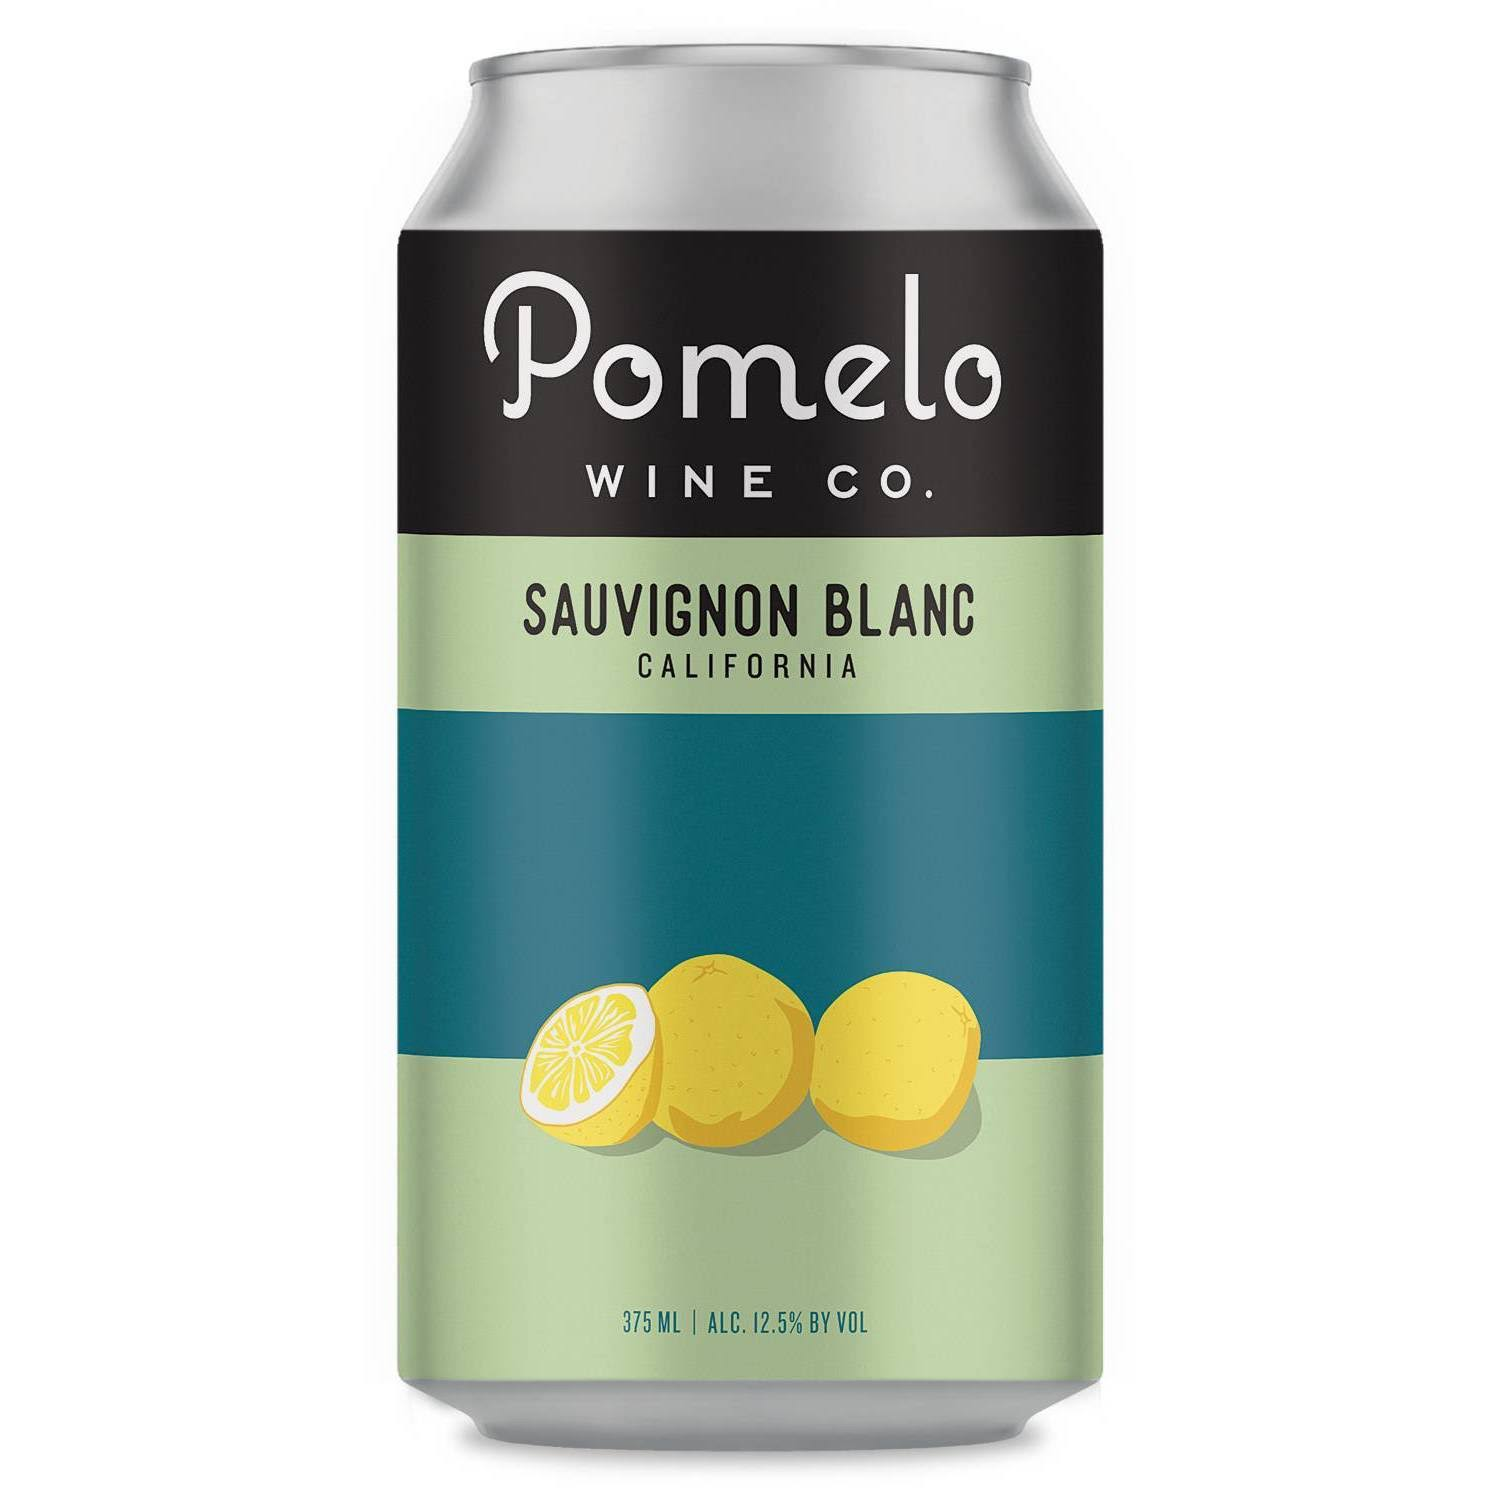 Pomelo Wine Co Sauvingon Blanc - 375ml Can, Size: 375 ml